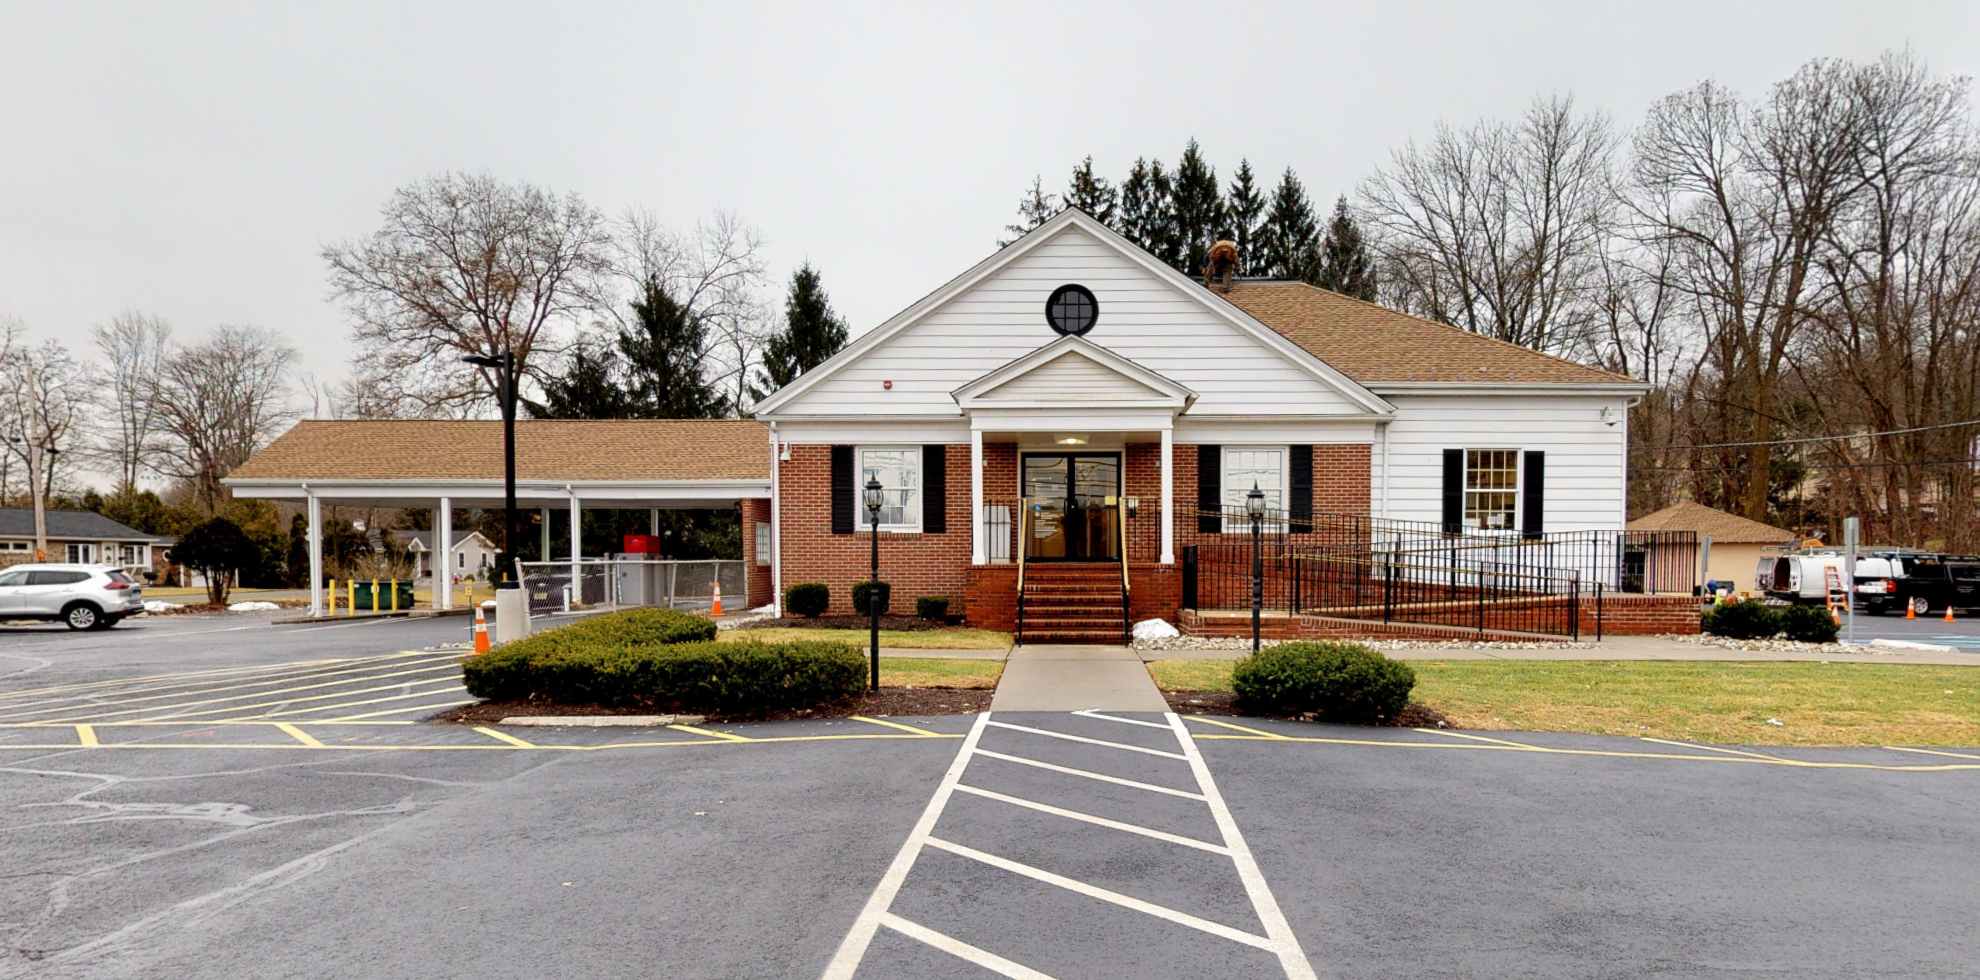 Bank of America financial center with drive-thru ATM | 152 Main St, Lincoln Park, NJ 07035